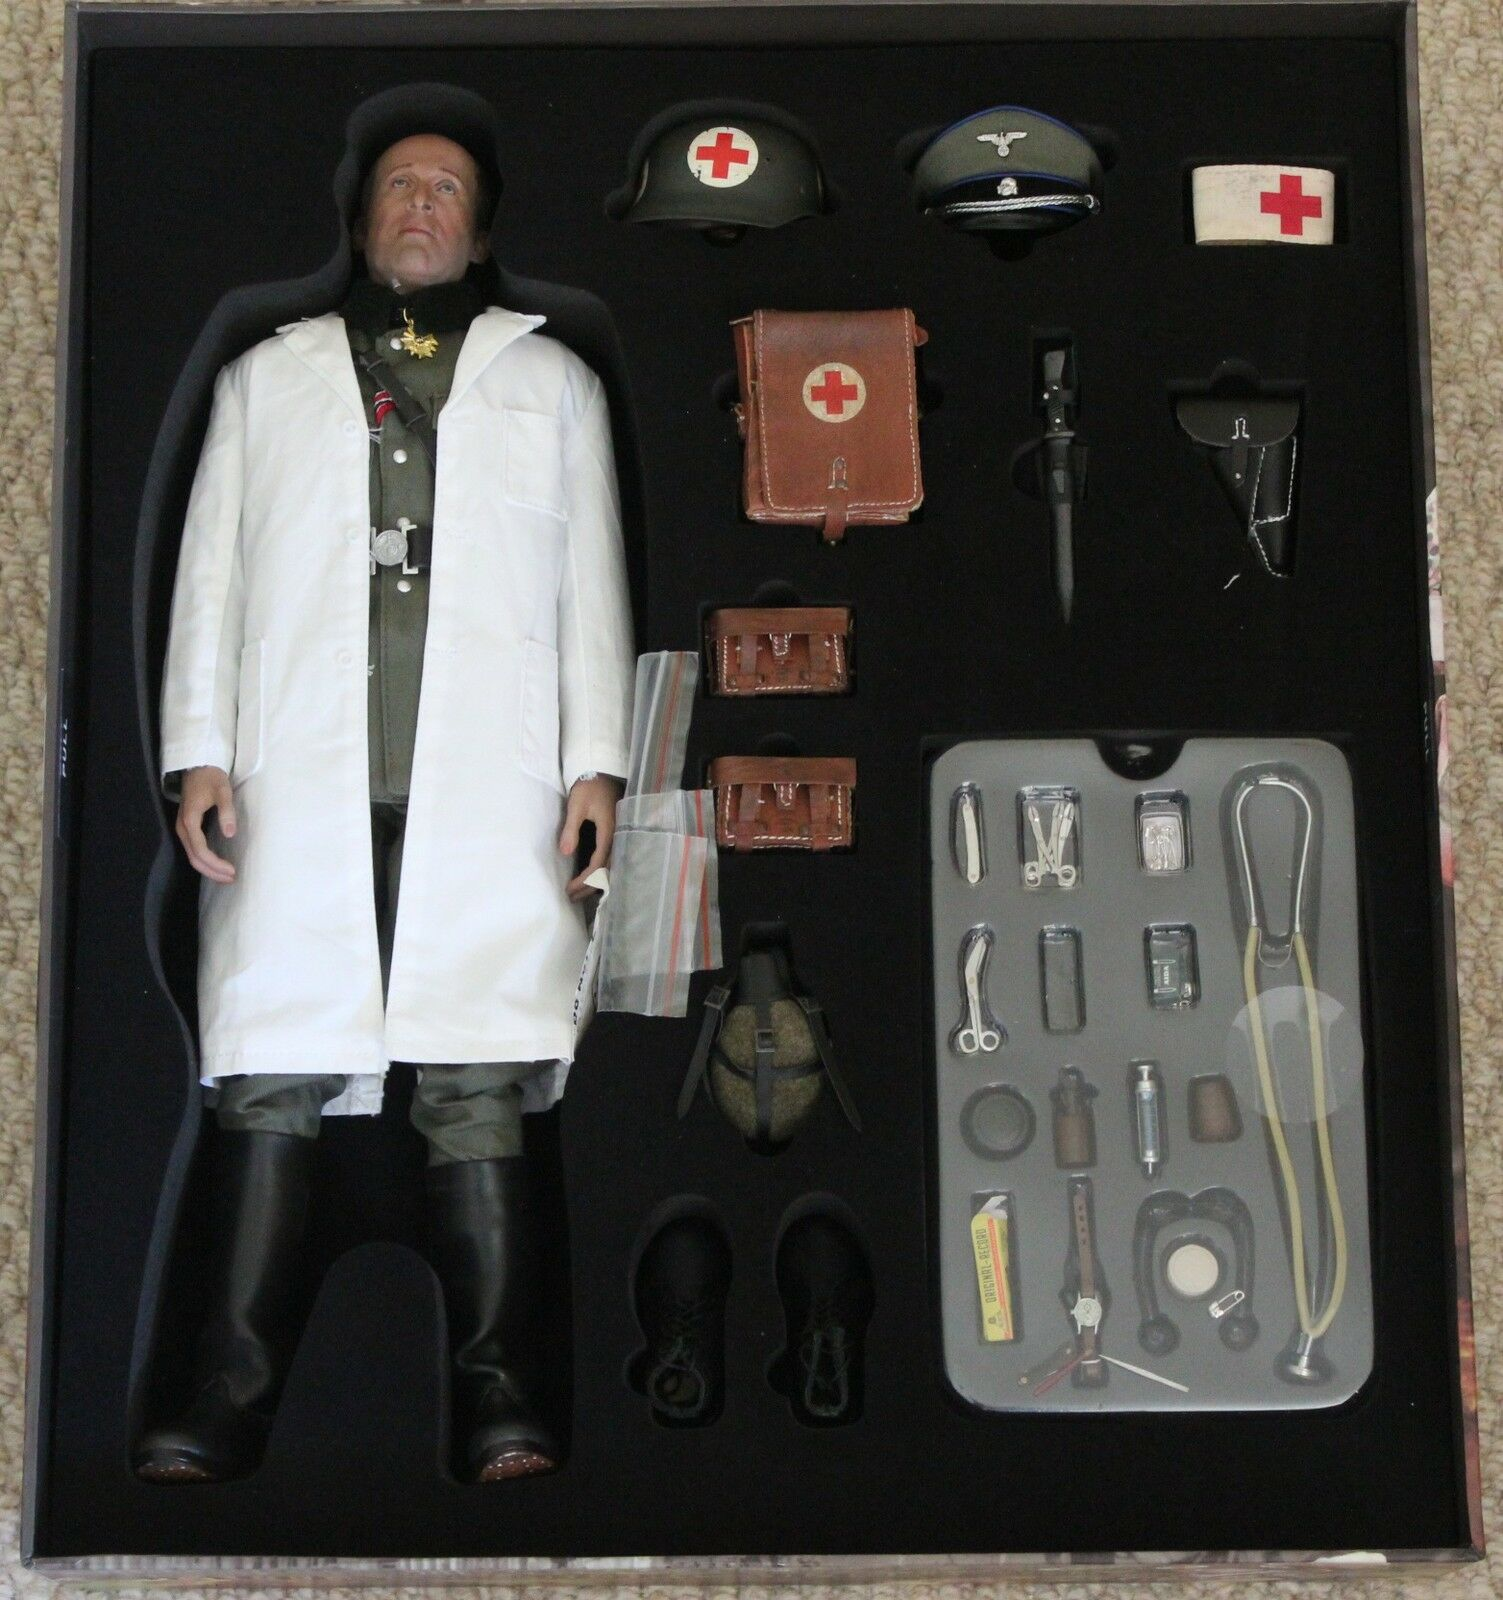 Did action action action figure german peter medic 1 6 12'' boxed hot toy ww11 dragon 2d72a8